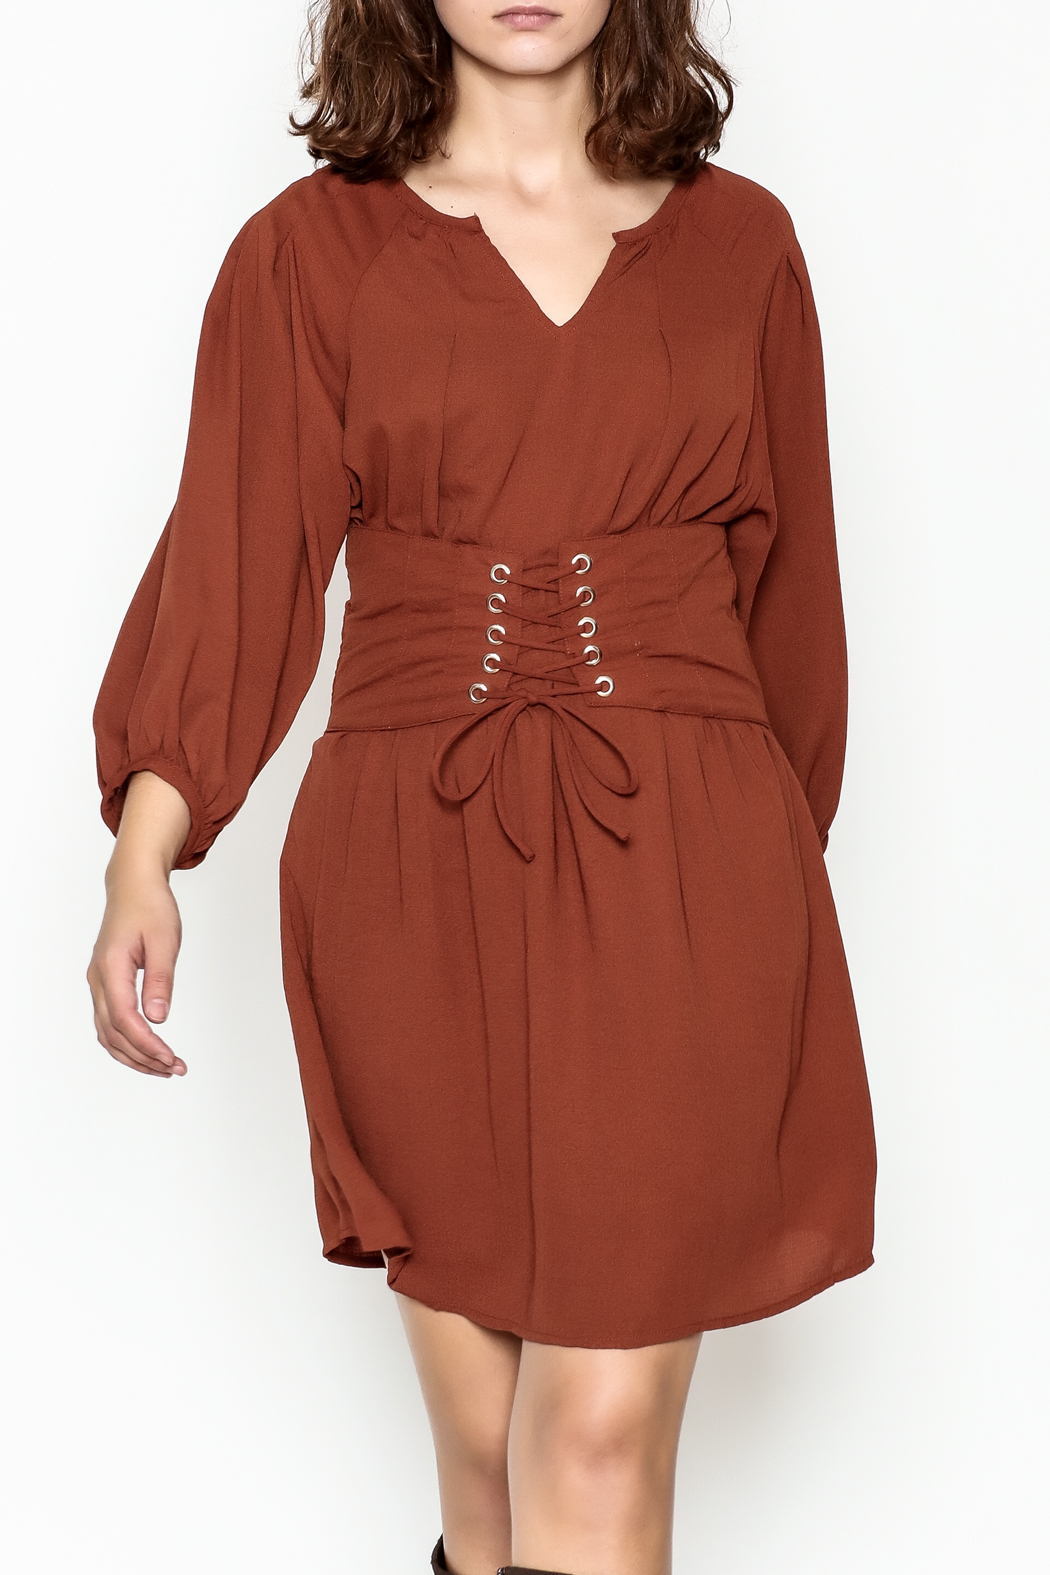 Entro Cinnamon Cinch Dress - Main Image